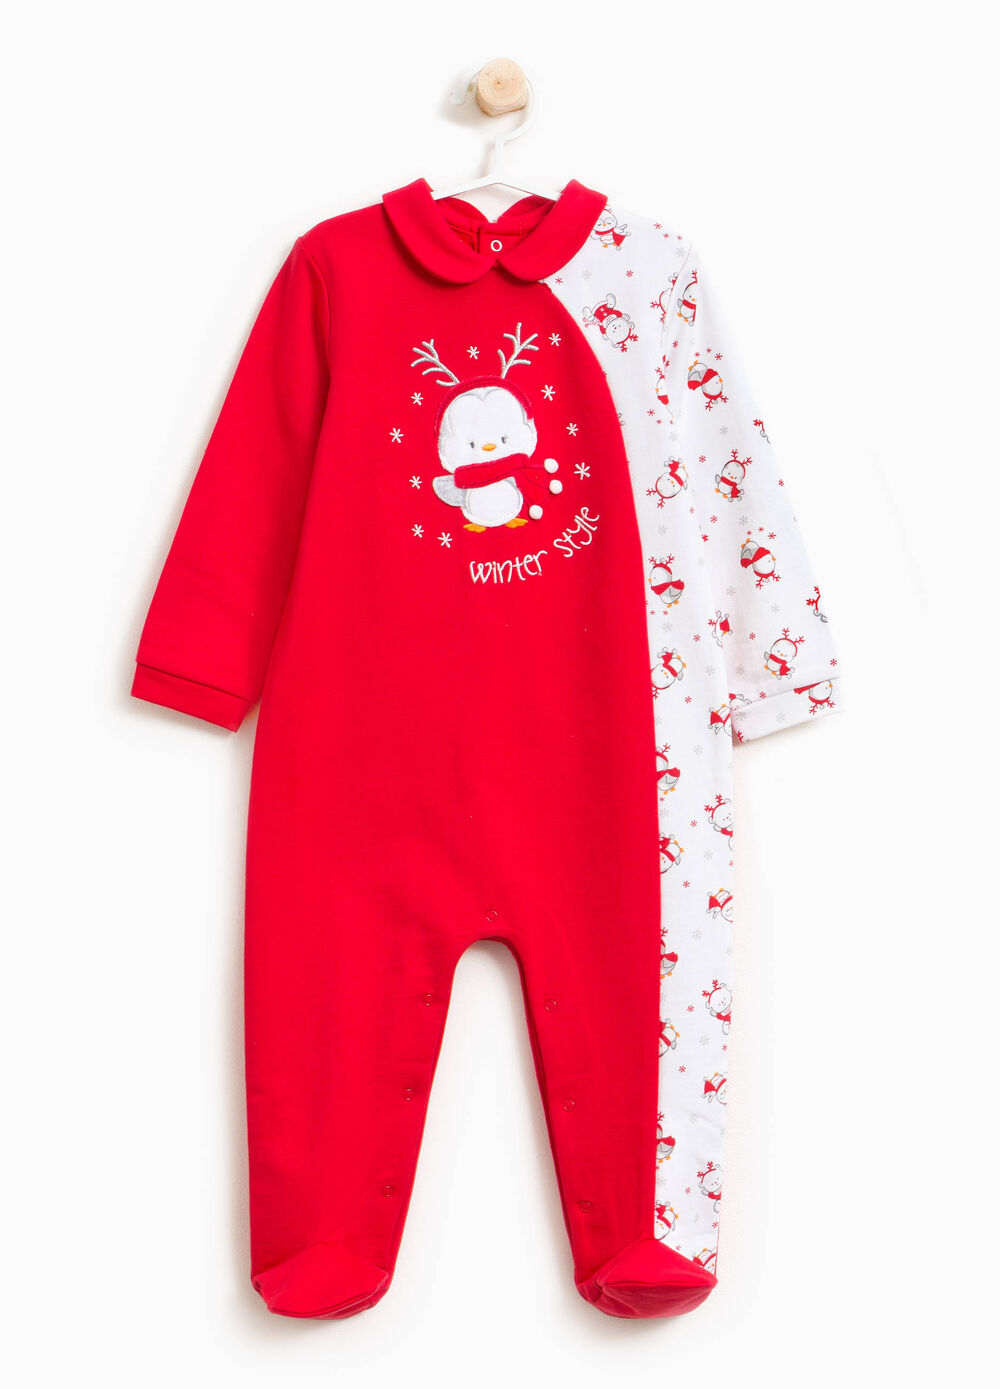 100% cotton onesie with Christmas print